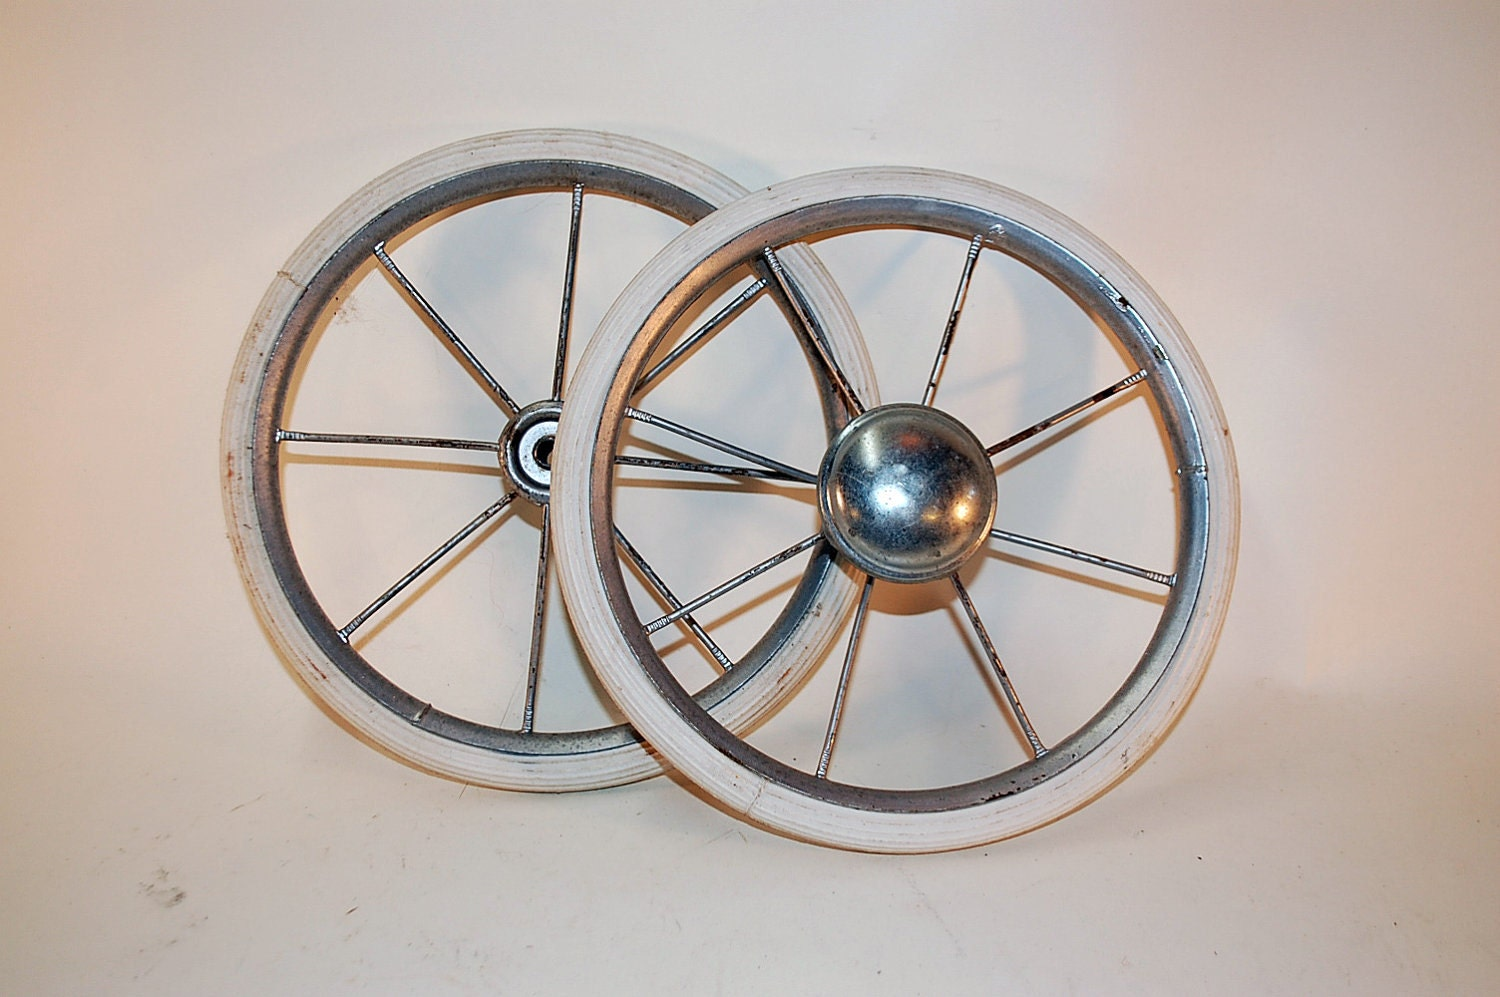 Two Large Vintage Baby Buggy Carriage Wheels 8 Inches